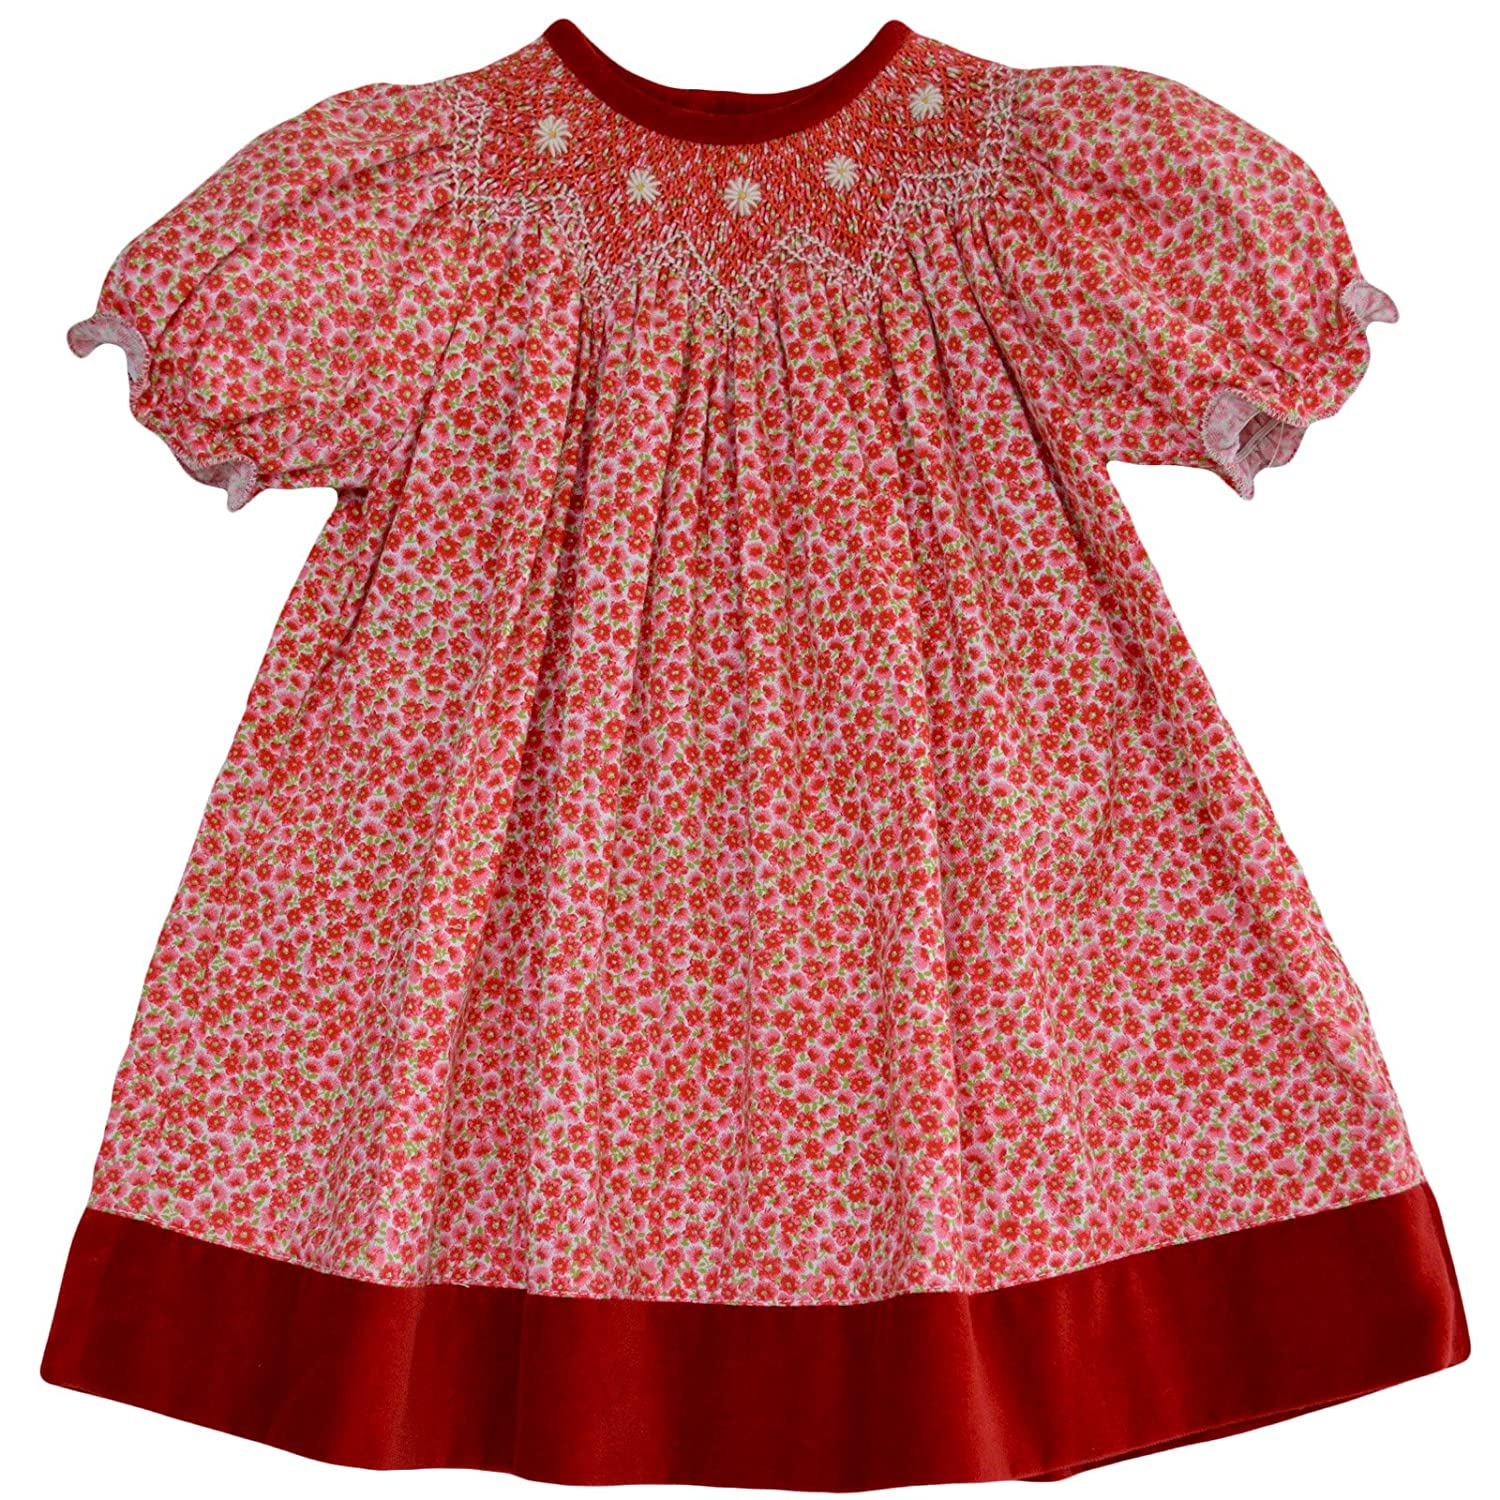 1940s Children's Clothing: Girls, Boys, Baby, Toddler Carriage Boutique Girls Festive Hand Smocked Holiday Bishop Dress - Red on Red Floral $48.00 AT vintagedancer.com